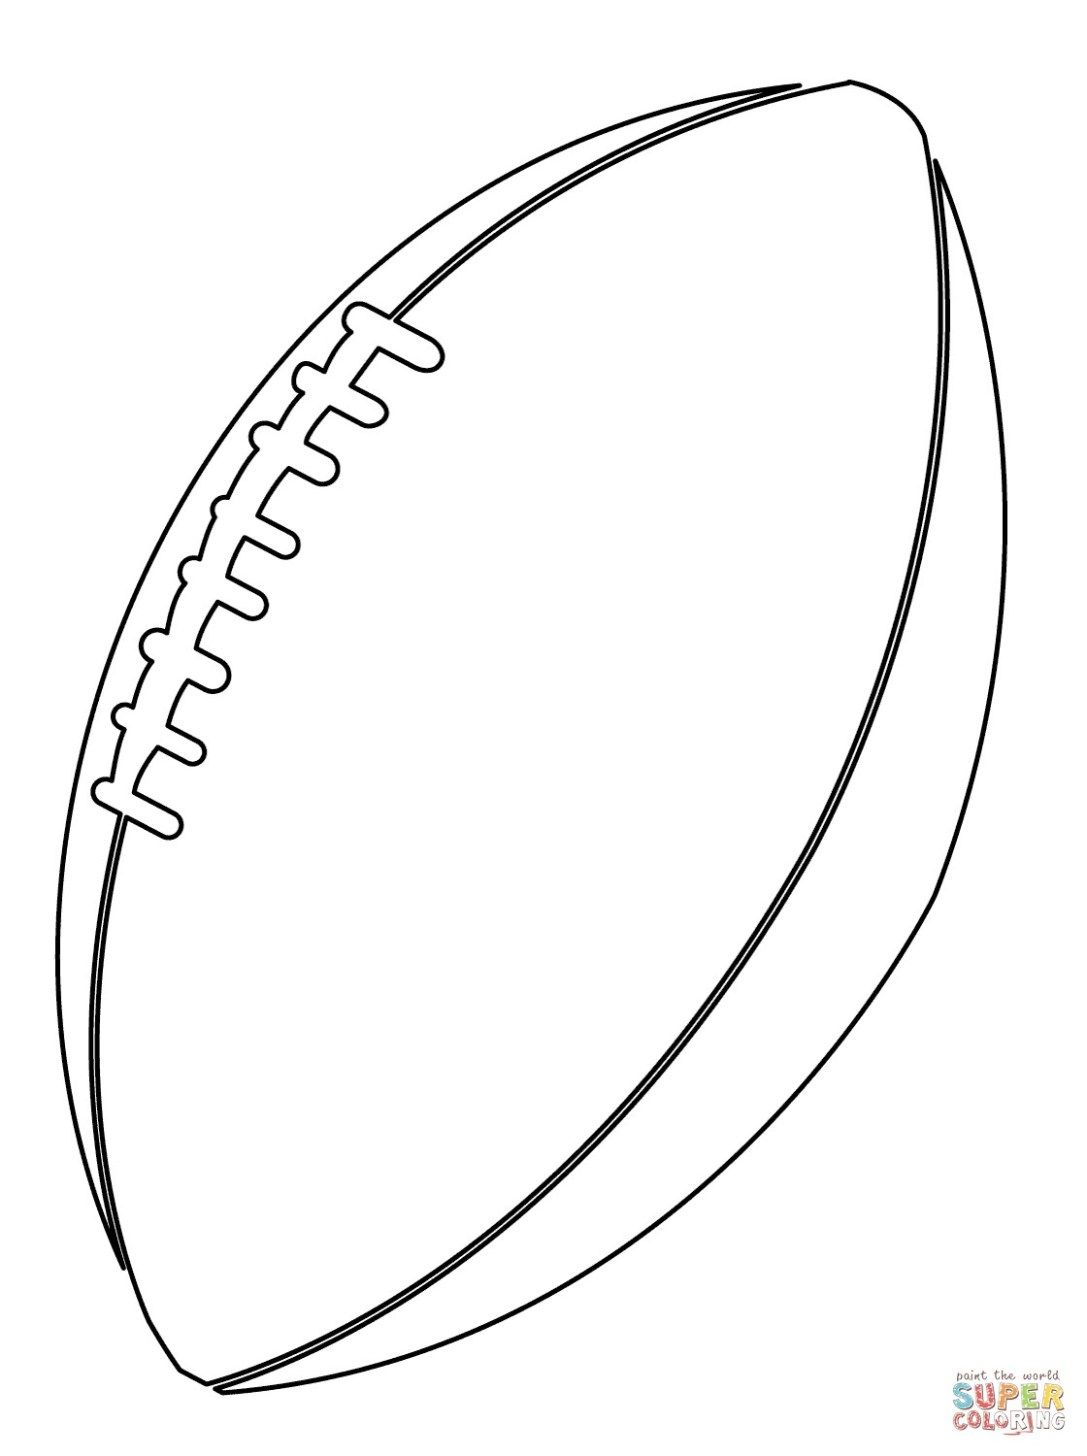 21 Awesome Image Of Football Coloring Pages Entitlementtrap Com Football Coloring Pages Sports Coloring Pages Free Printable Coloring Pages